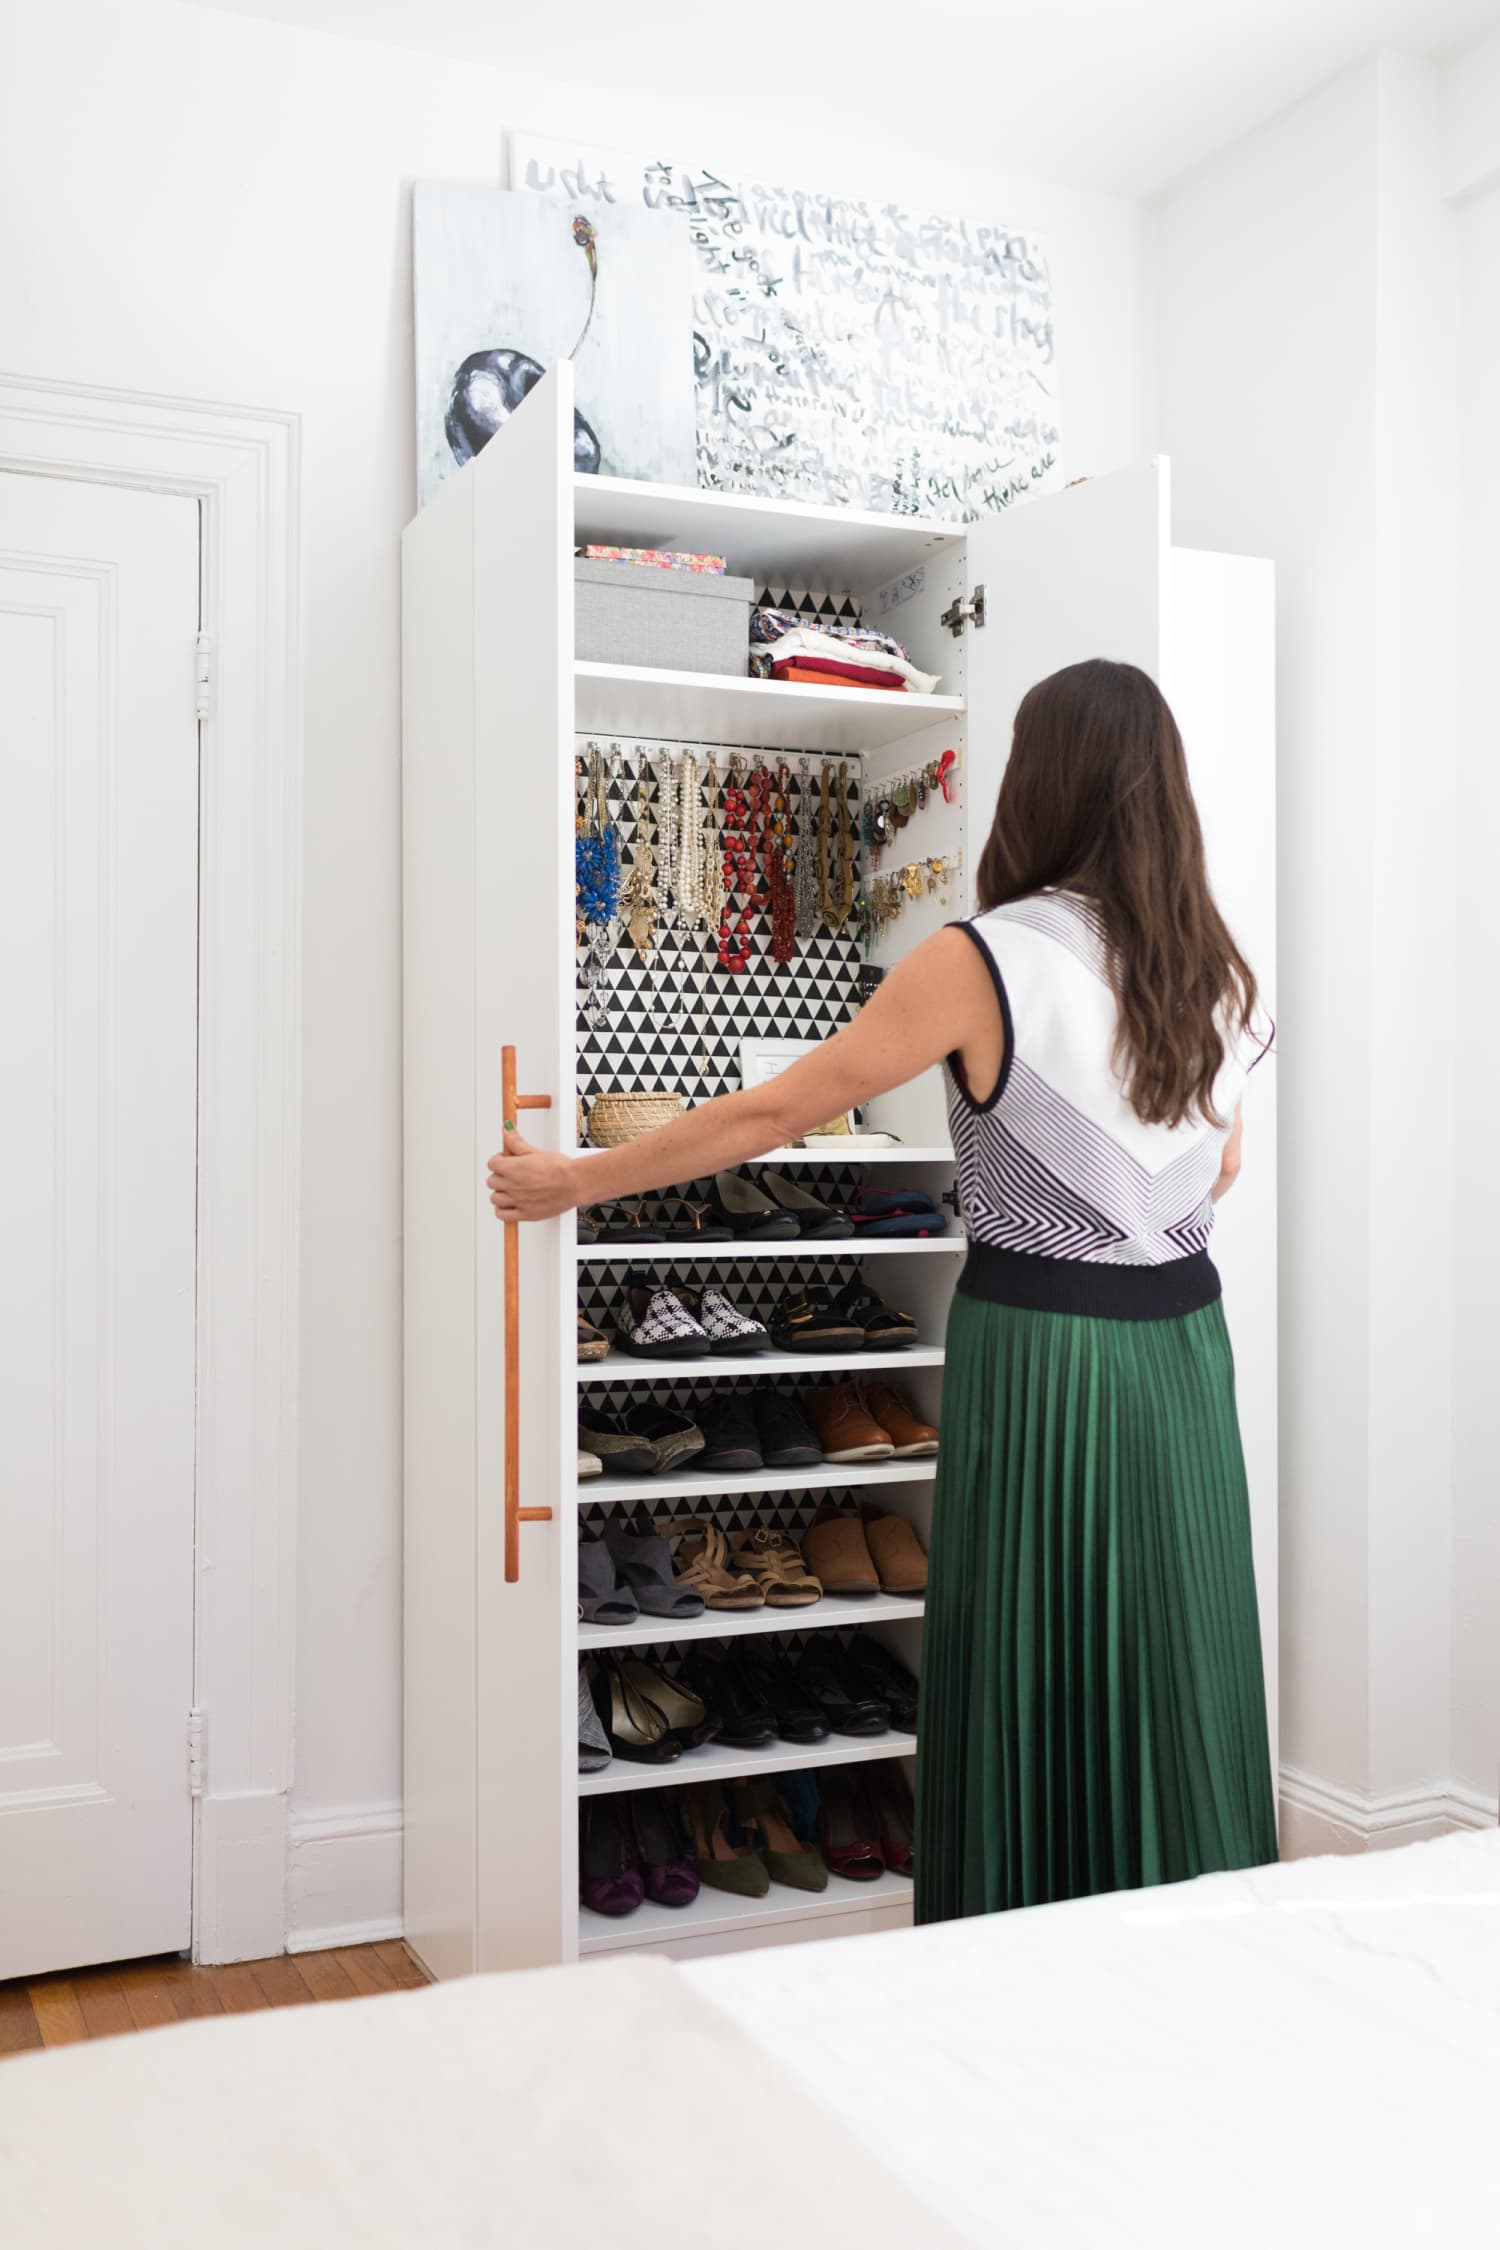 The Surprising Health Benefits of a Clean Closet